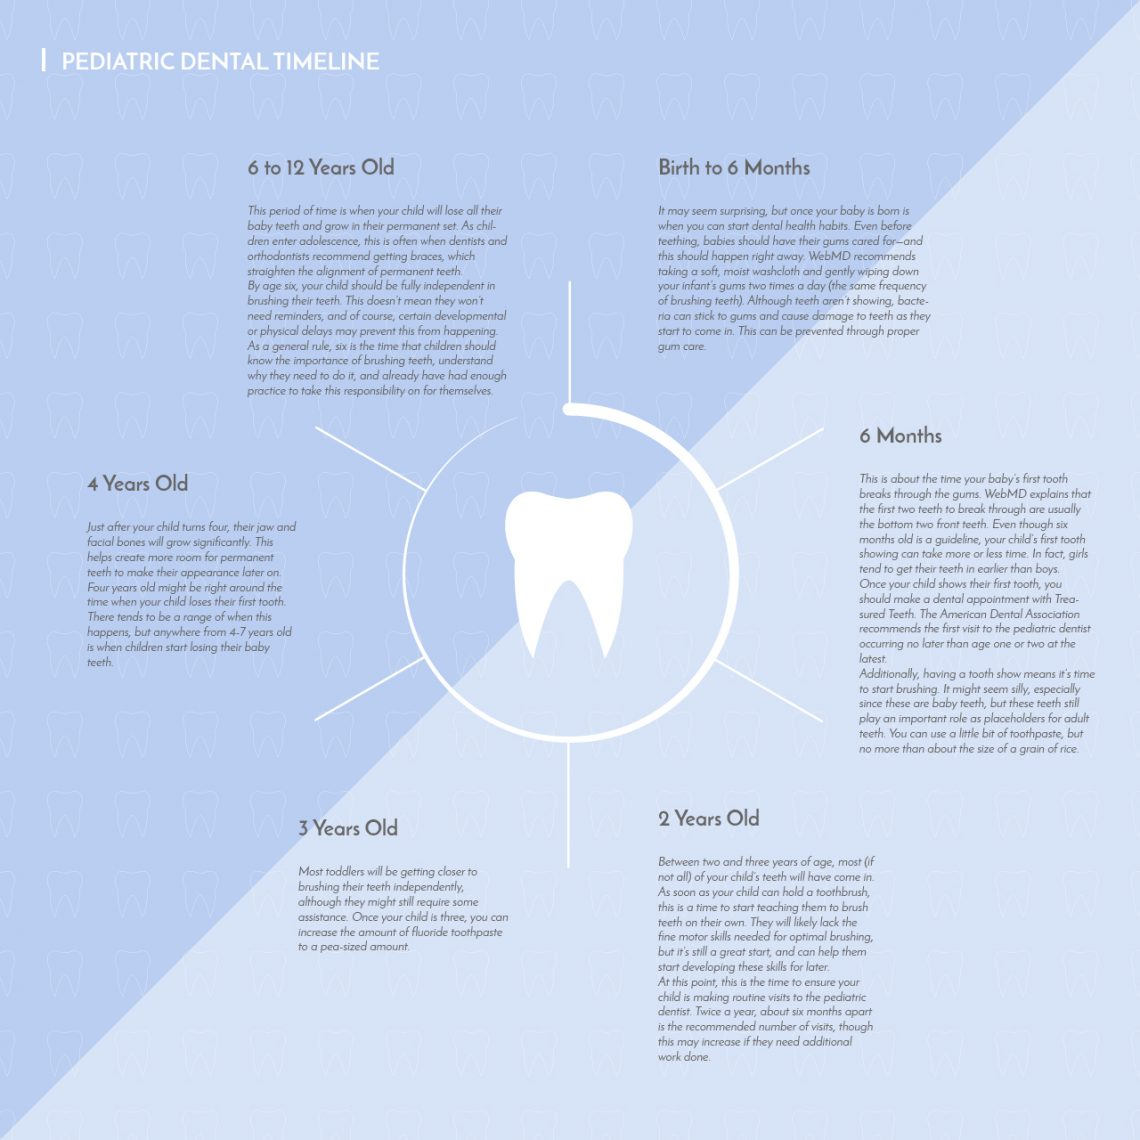 Pediatric dentist treasured teeth but when exactly is the right time to take your child into the dentist when should tooth brushing and flossing start taking place ccuart Gallery